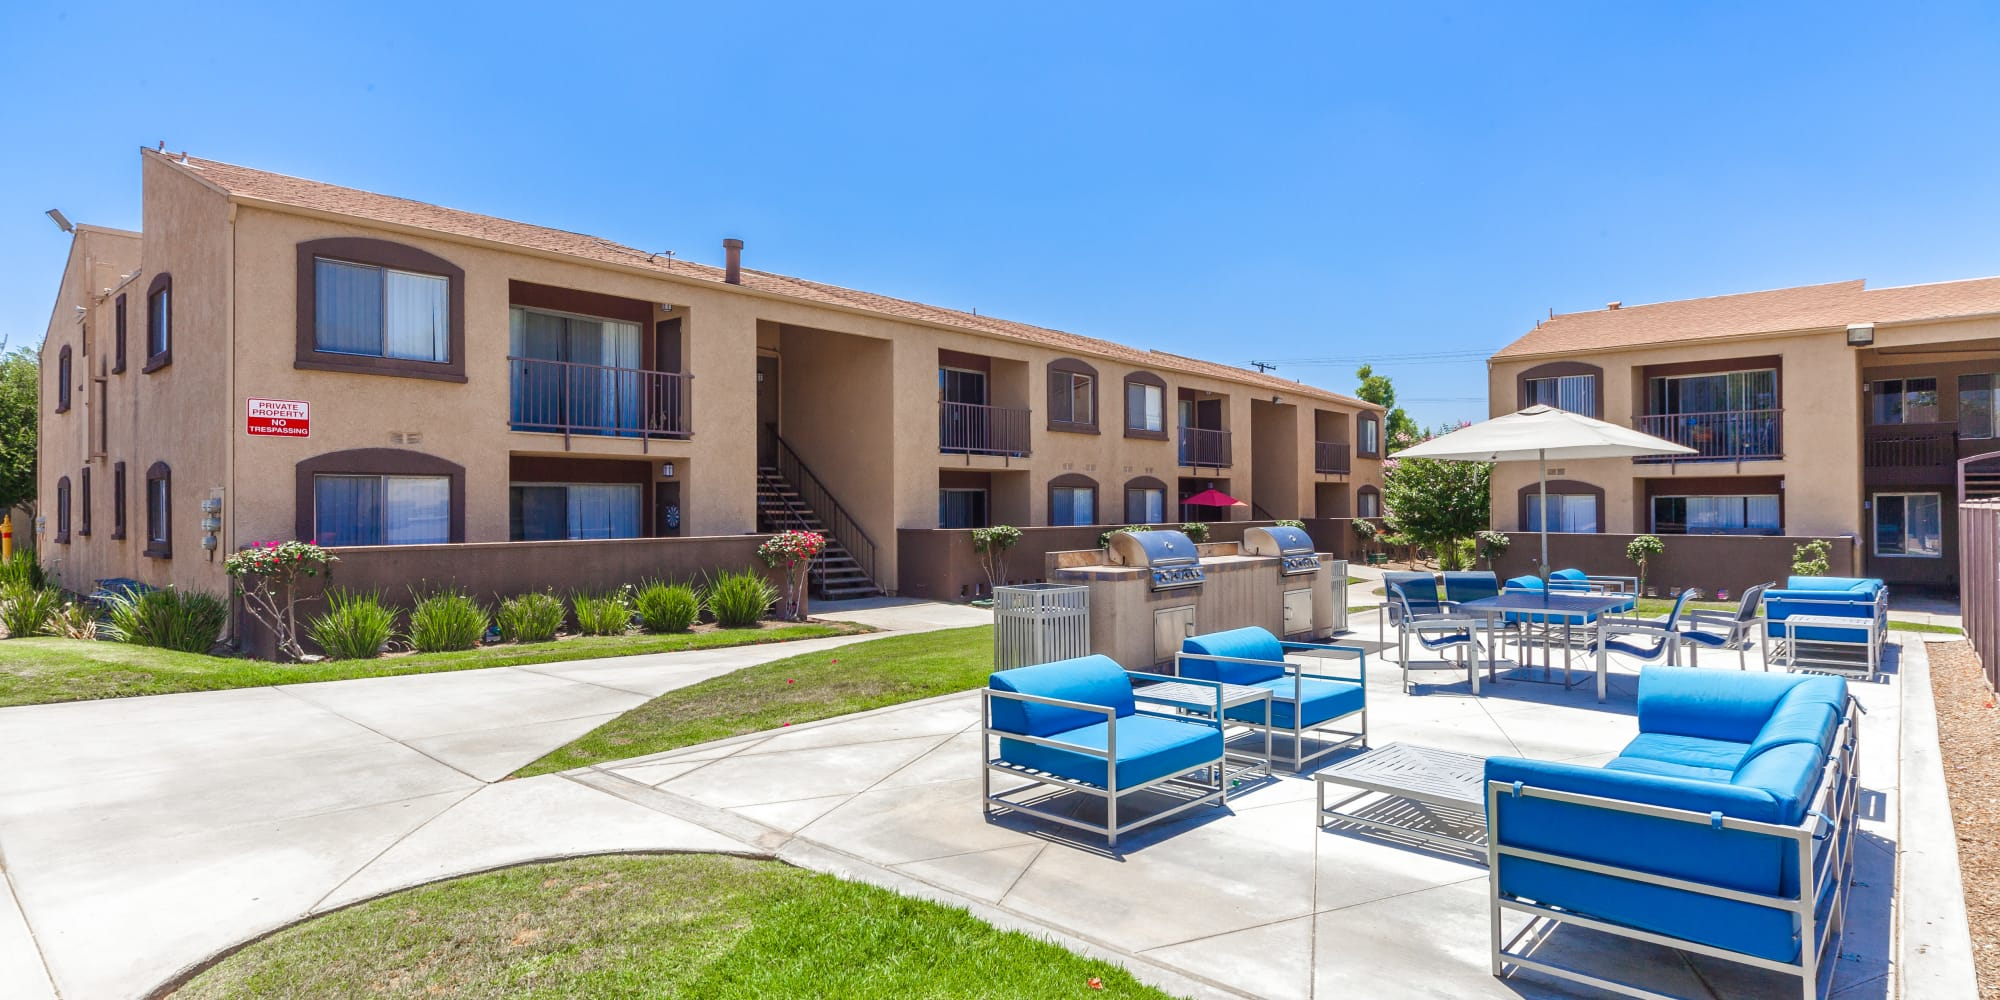 Courtyard with outdoor seating at West Fifth Apartments in Ontario, California